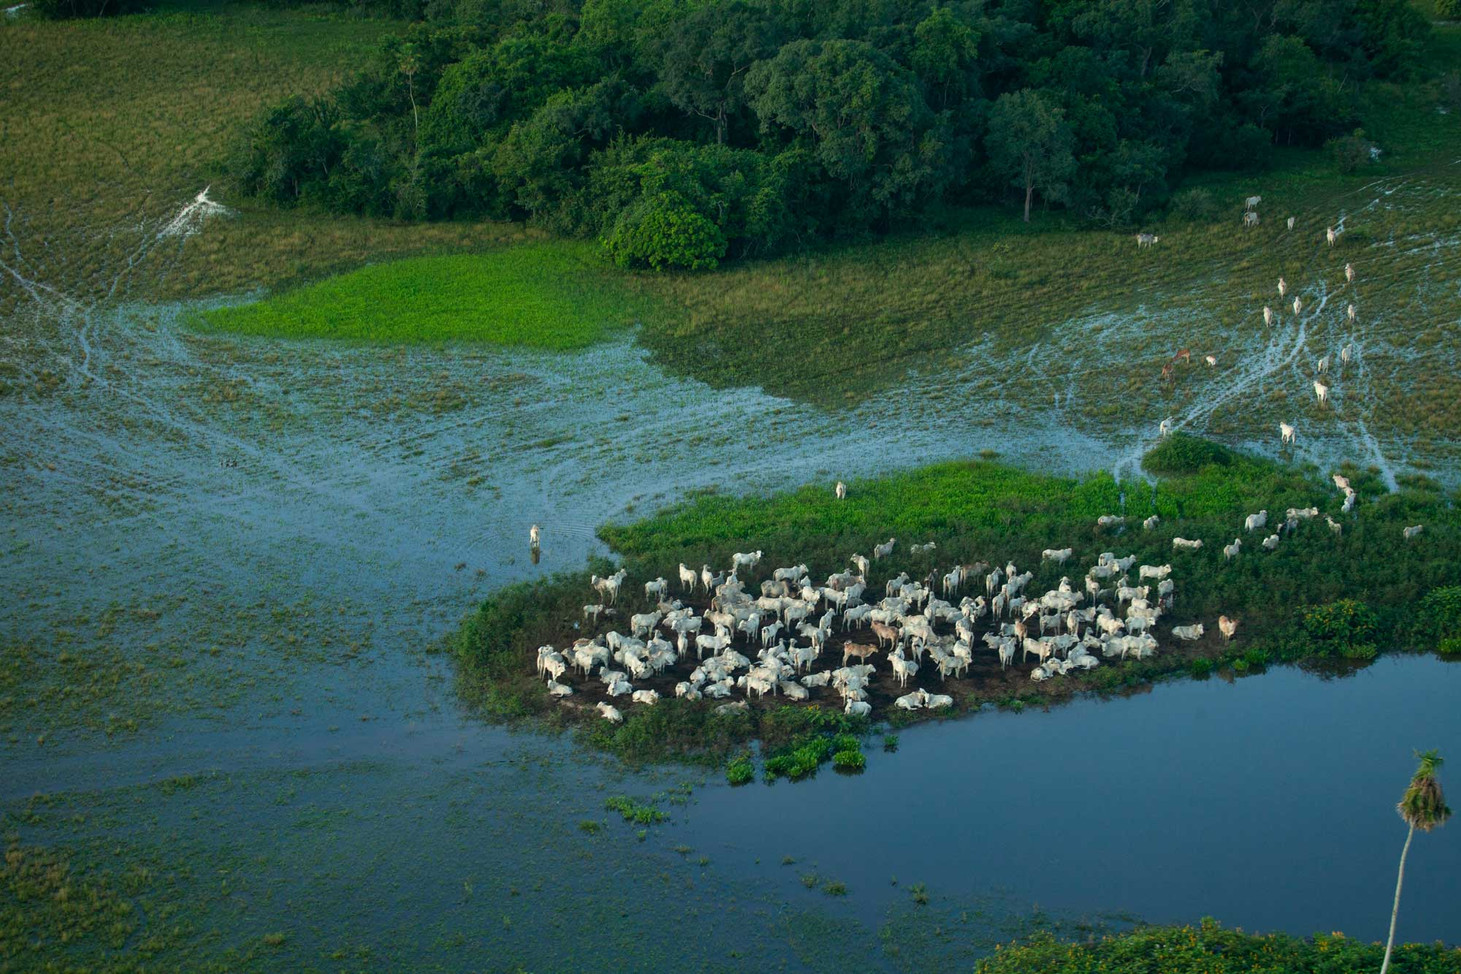 Flying overhead the Pantanal, a group of cattle huddle to one of the spots of remaining land in a flooded area.   Cattle raising and agriculture is the number one reason for deforestation of the Pantanal.